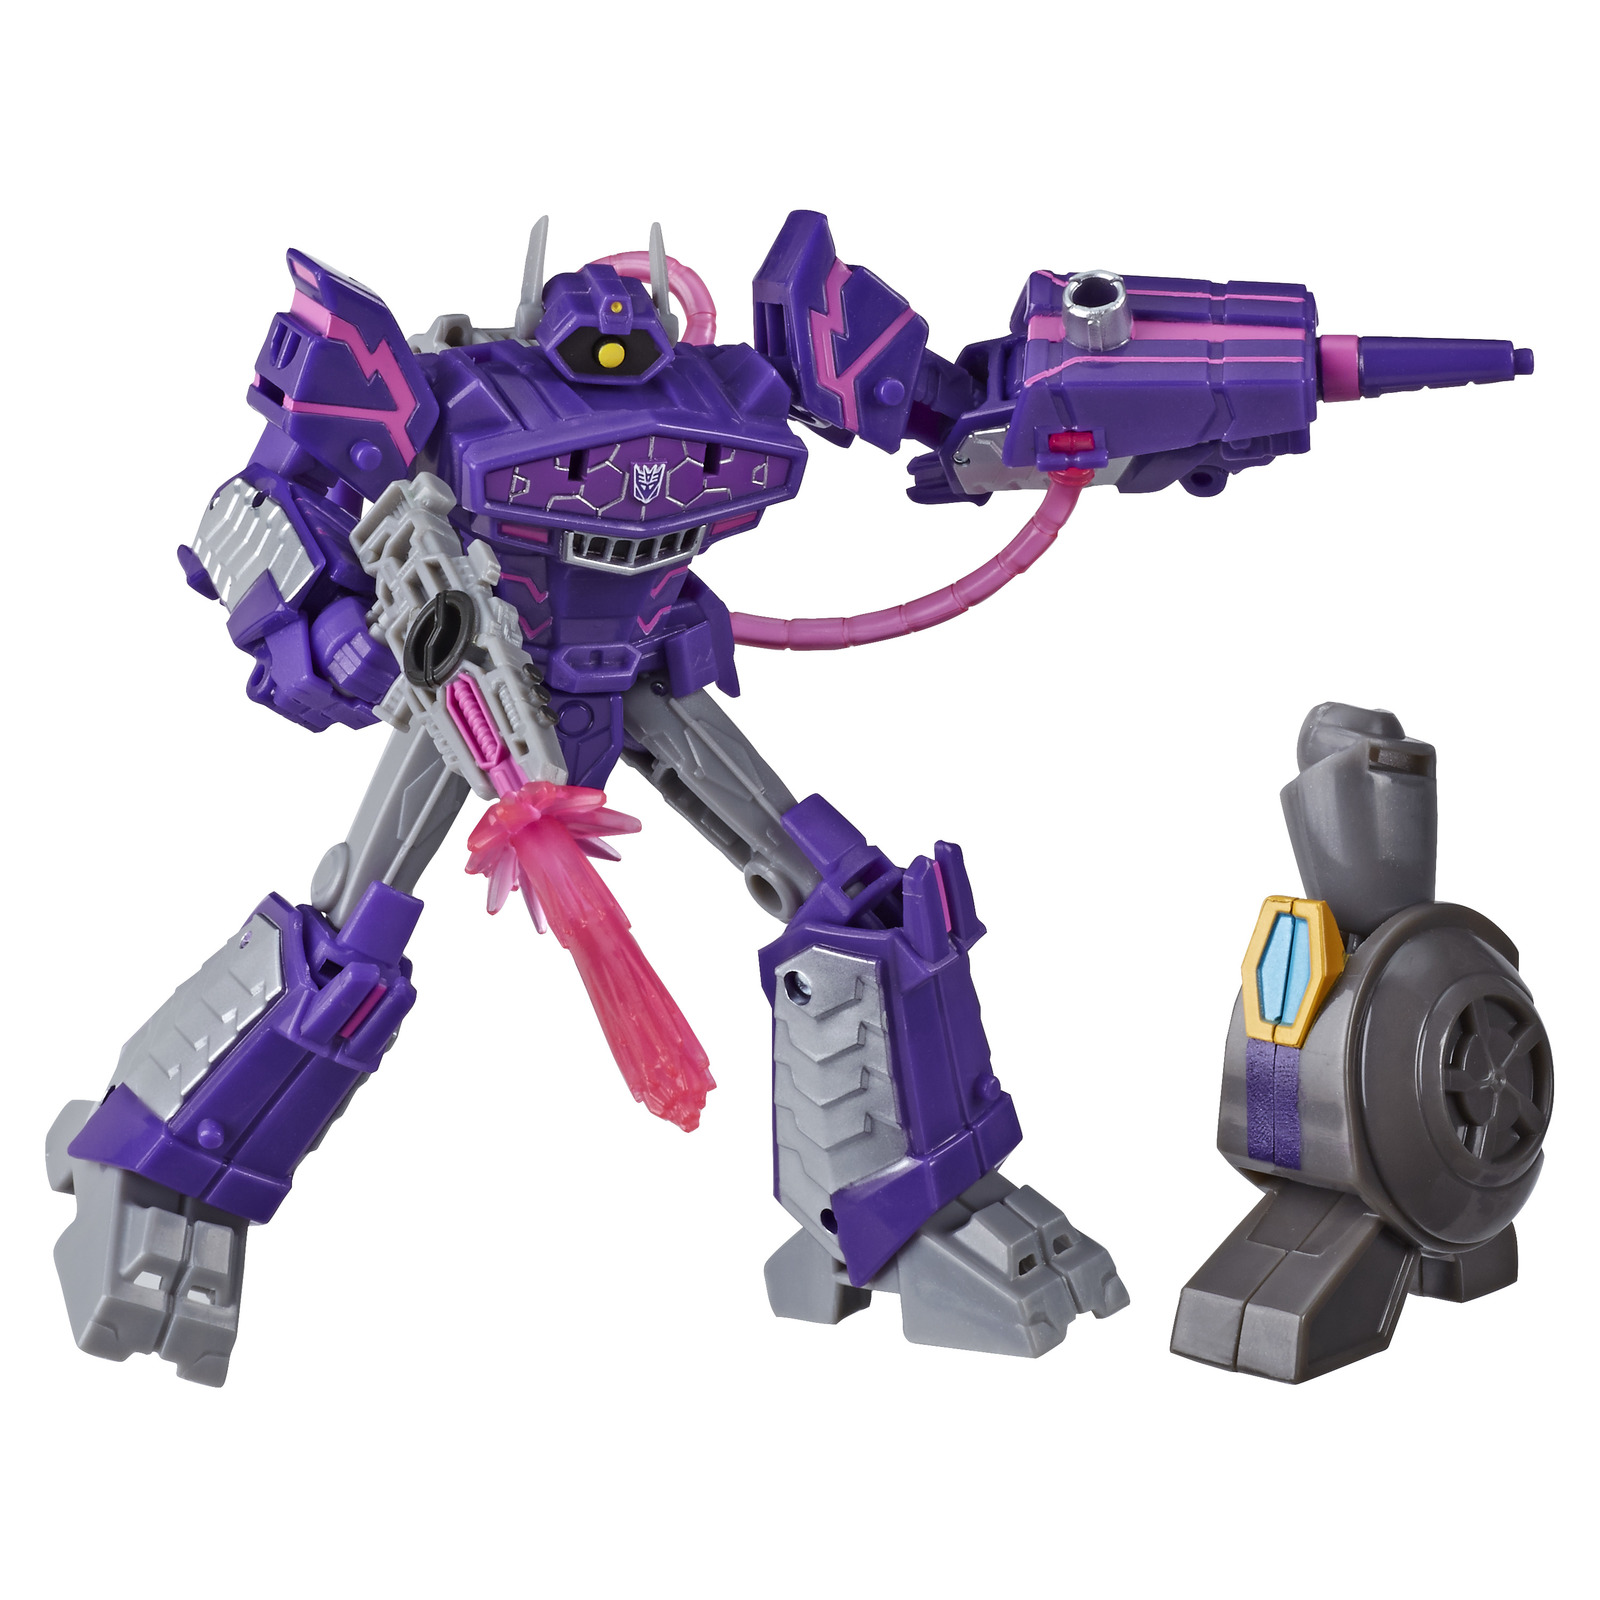 Transformers Cyberverse: Deluxe Class Action Figure - Shockwave image